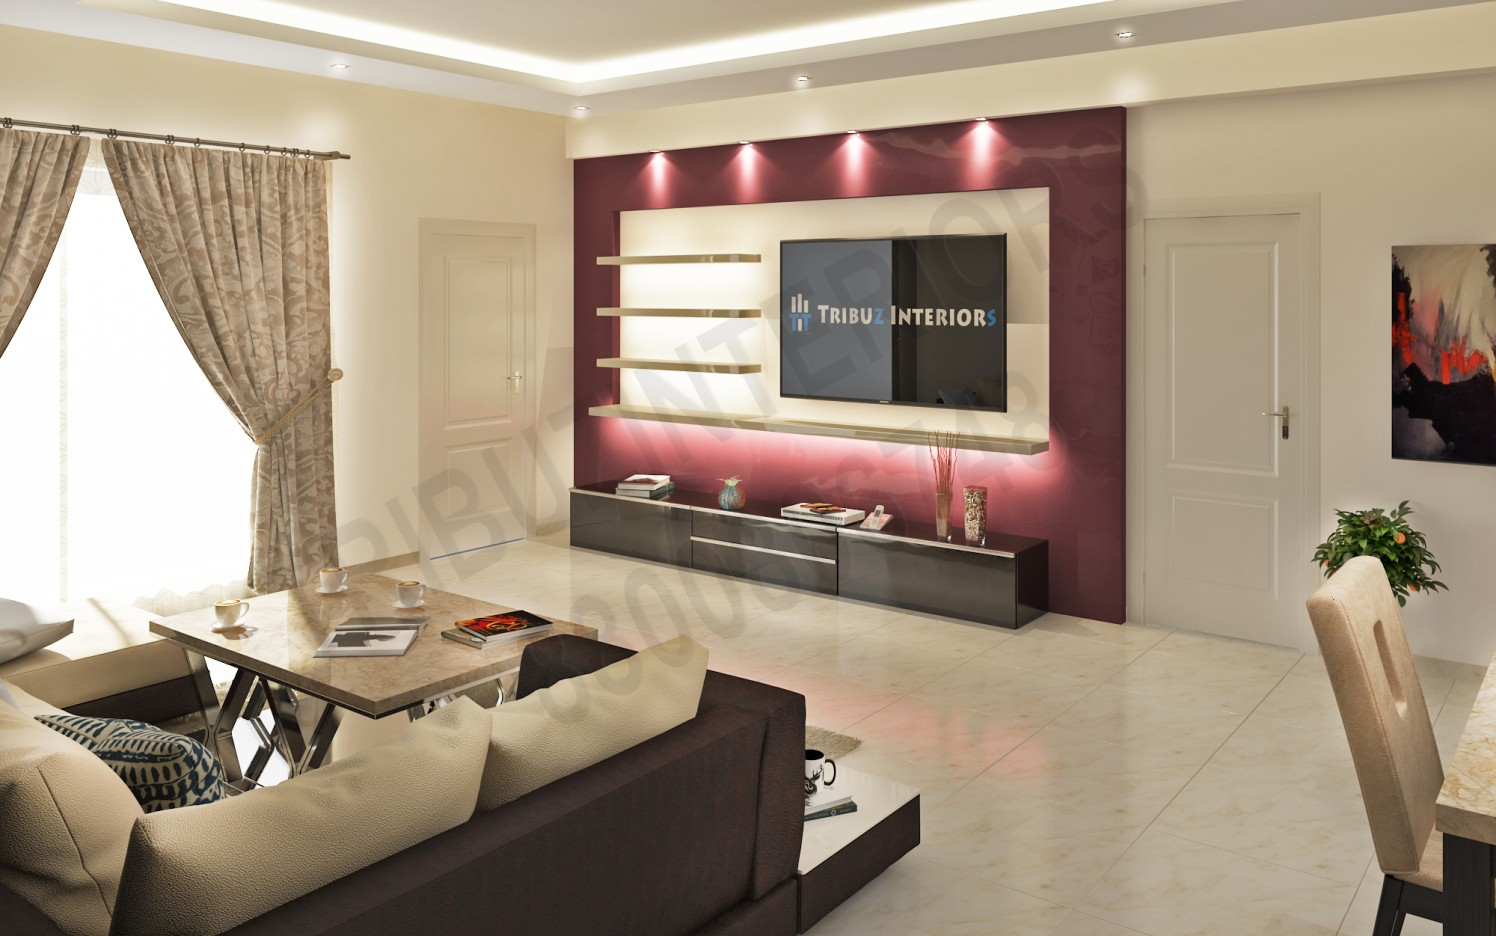 Stylish Living Room With Designer TV Unit by Tribuz Interiors Pvt. Ltd. Living-room Modern | Interior Design Photos & Ideas